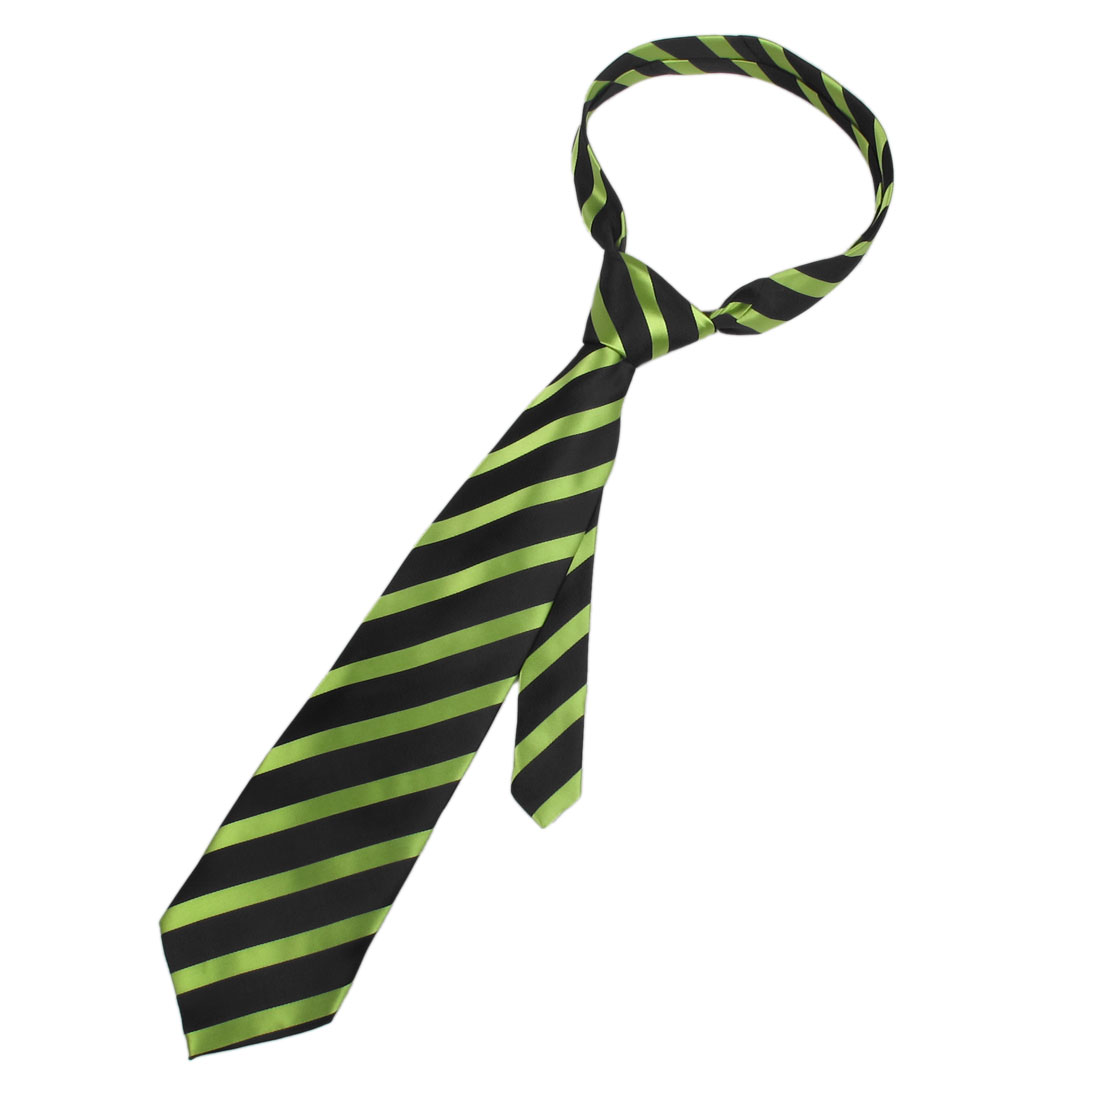 Men Diagonal Stripes Black Green Adjustable Neckwear Neck Tie